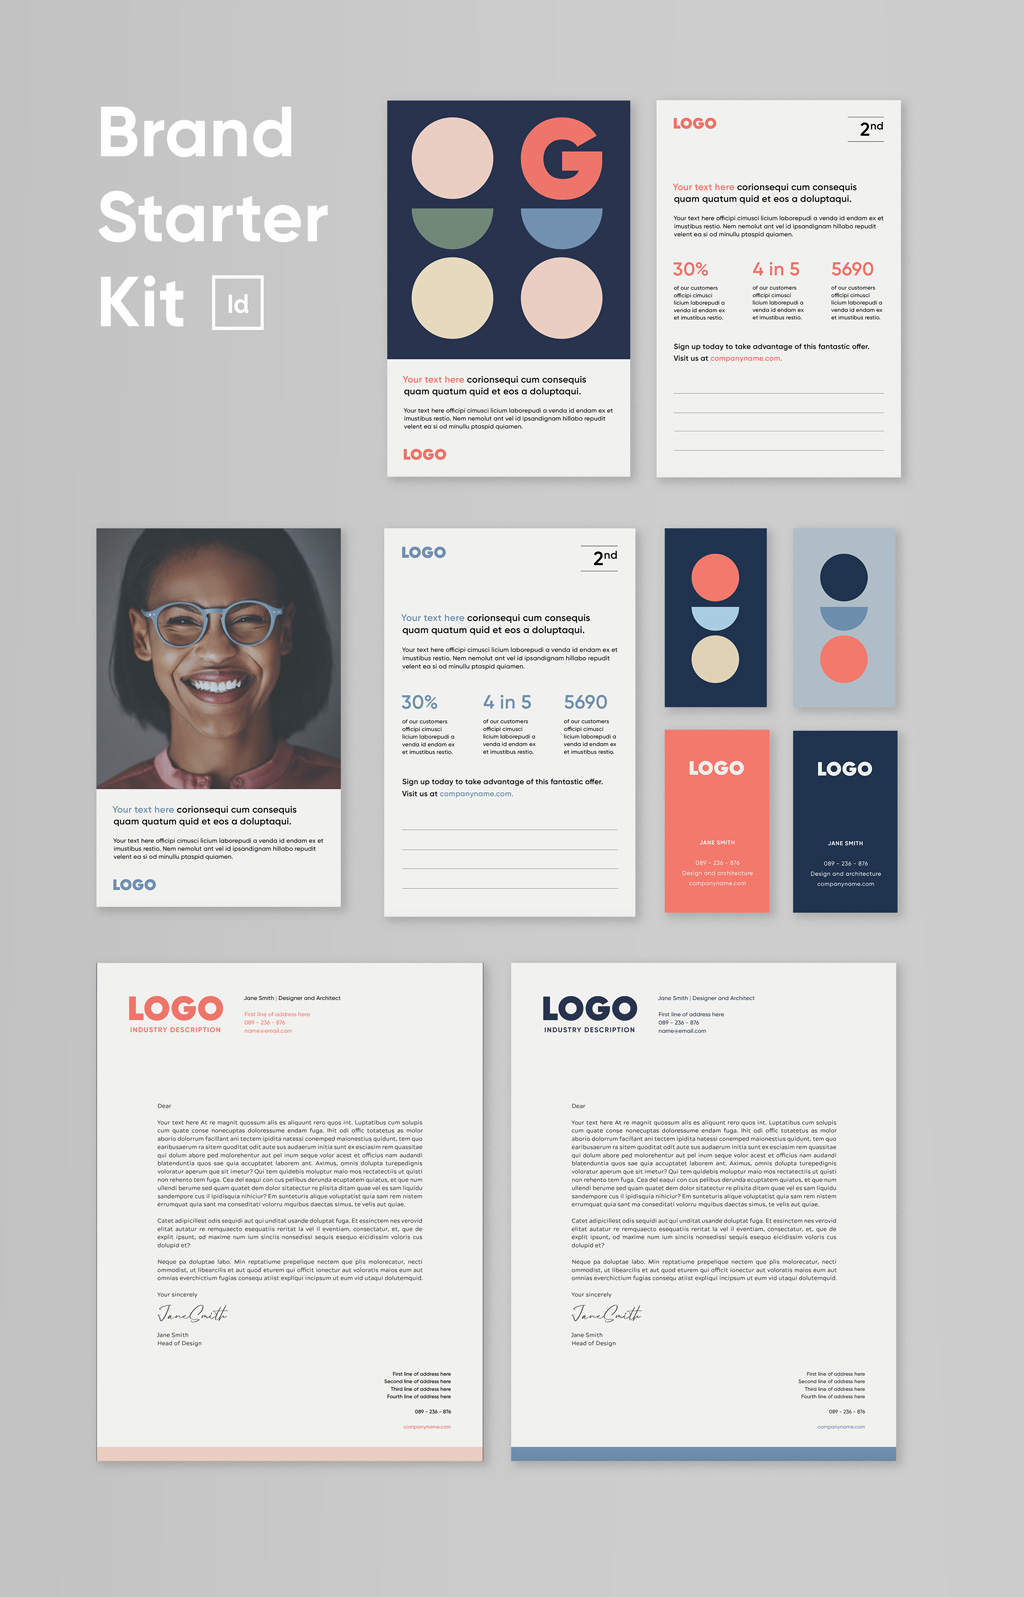 brand starter kit brand guidelines template indesign brand identity template adobe indesign new business indesign templates